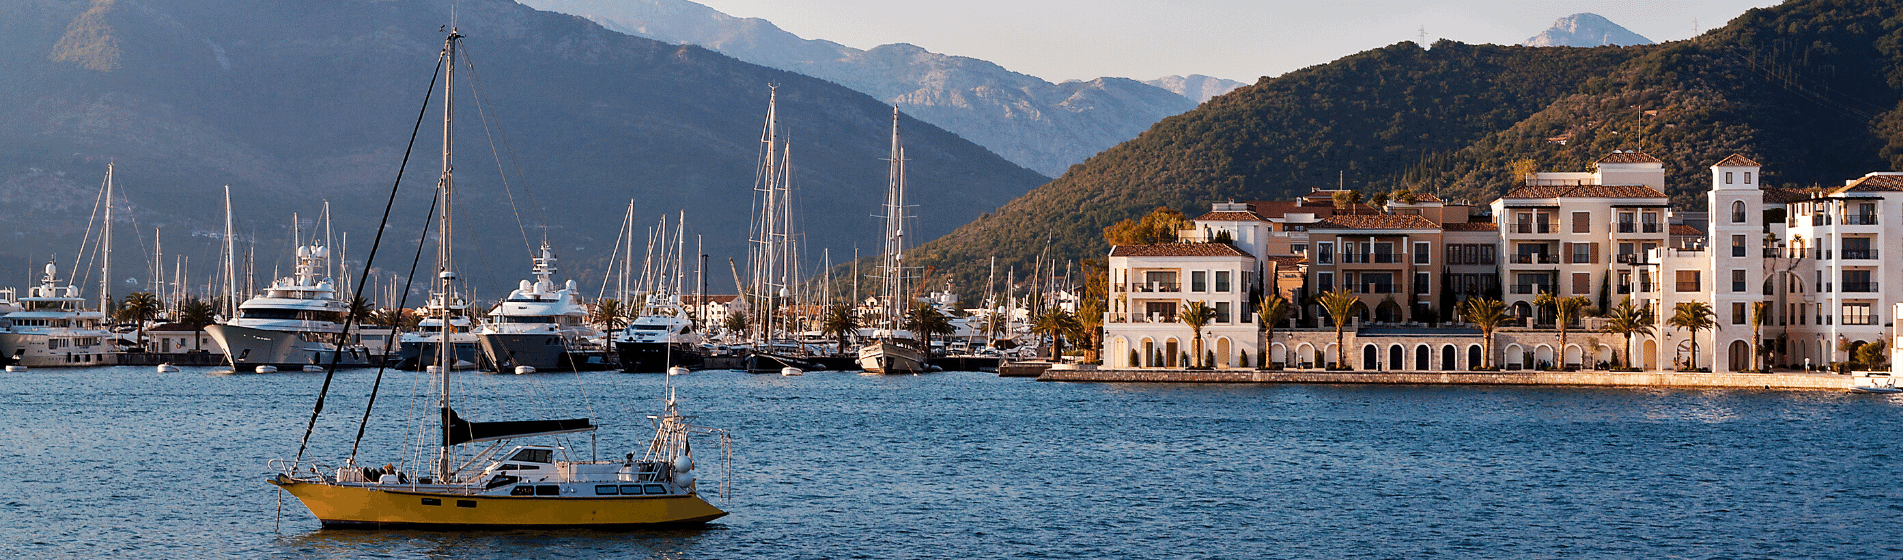 Best Small Towns in Europe